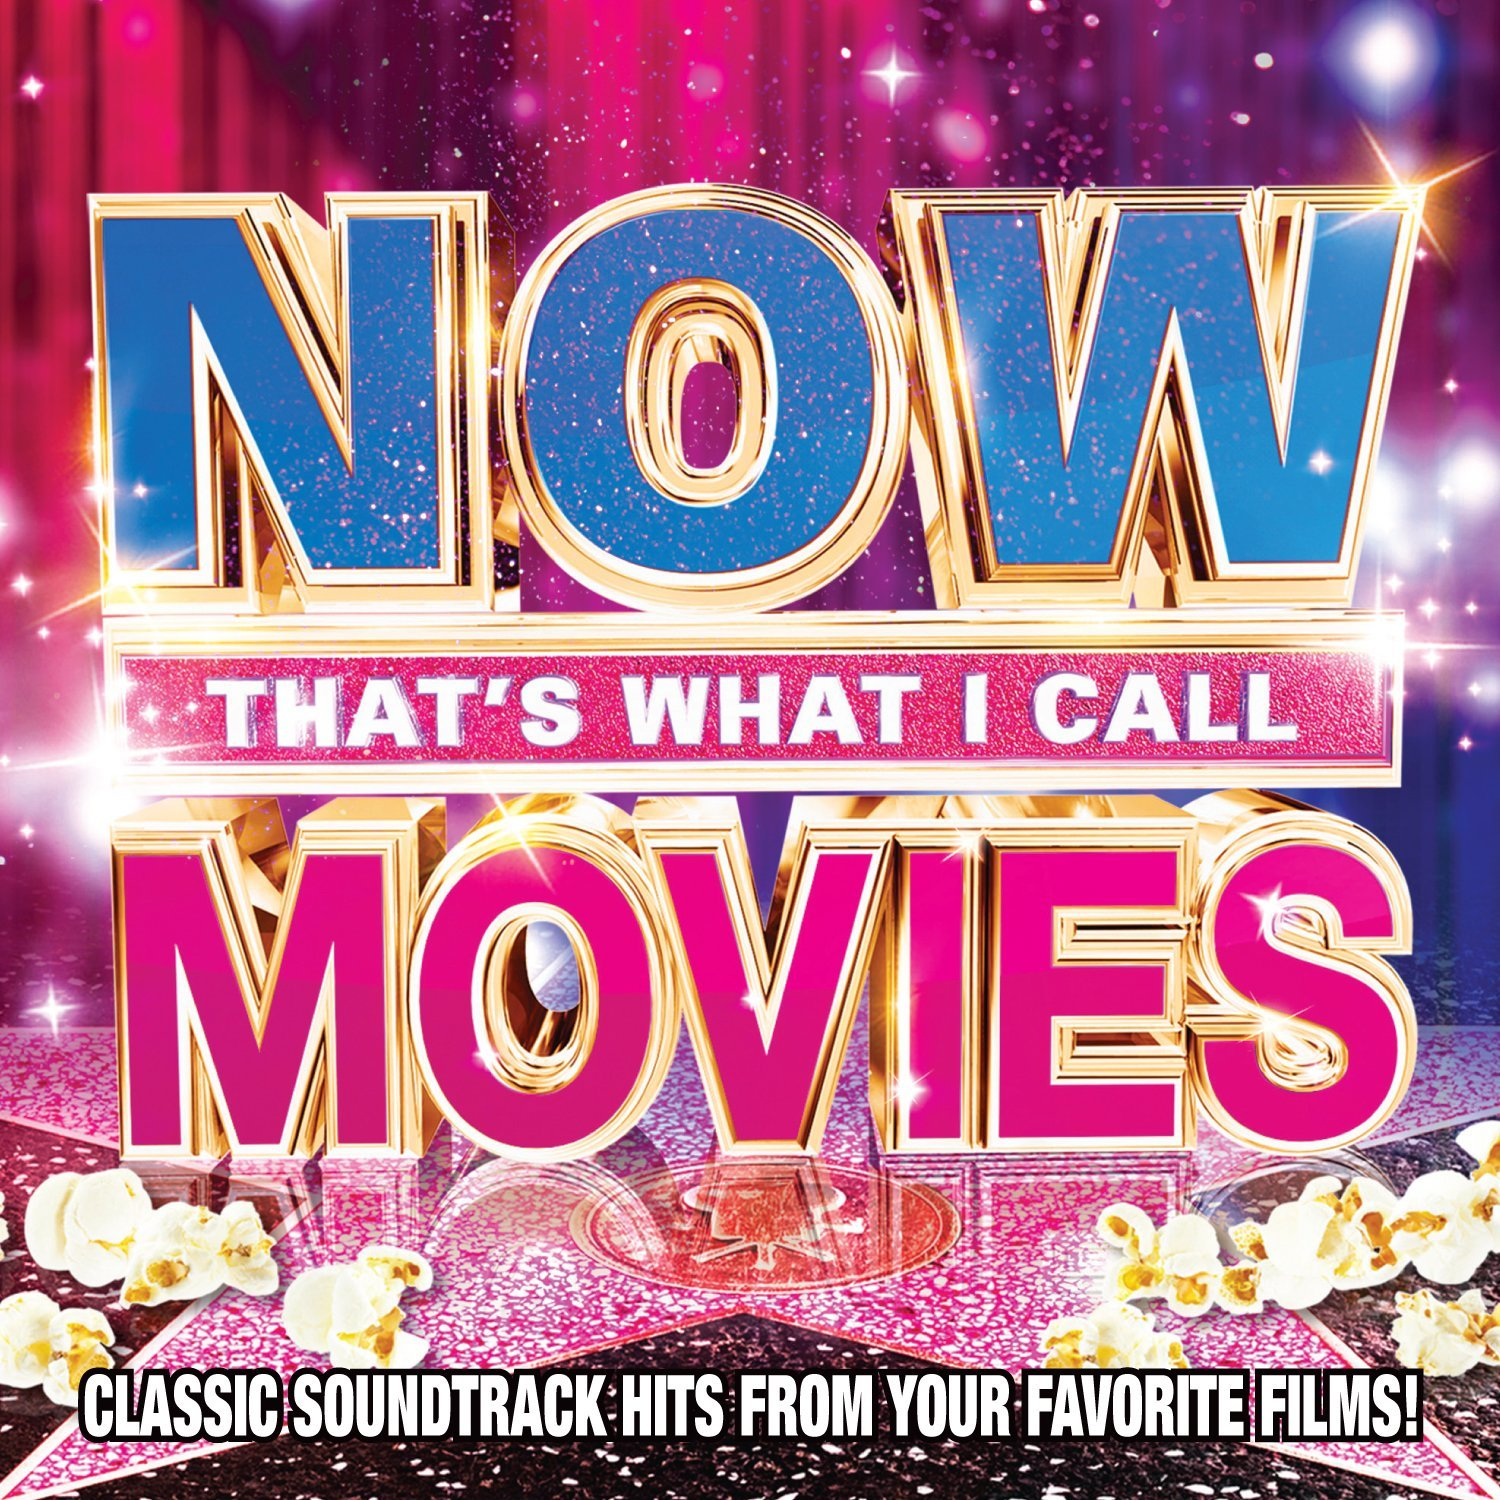 Now That's What I Call Music! - Now That's What I Call Movies